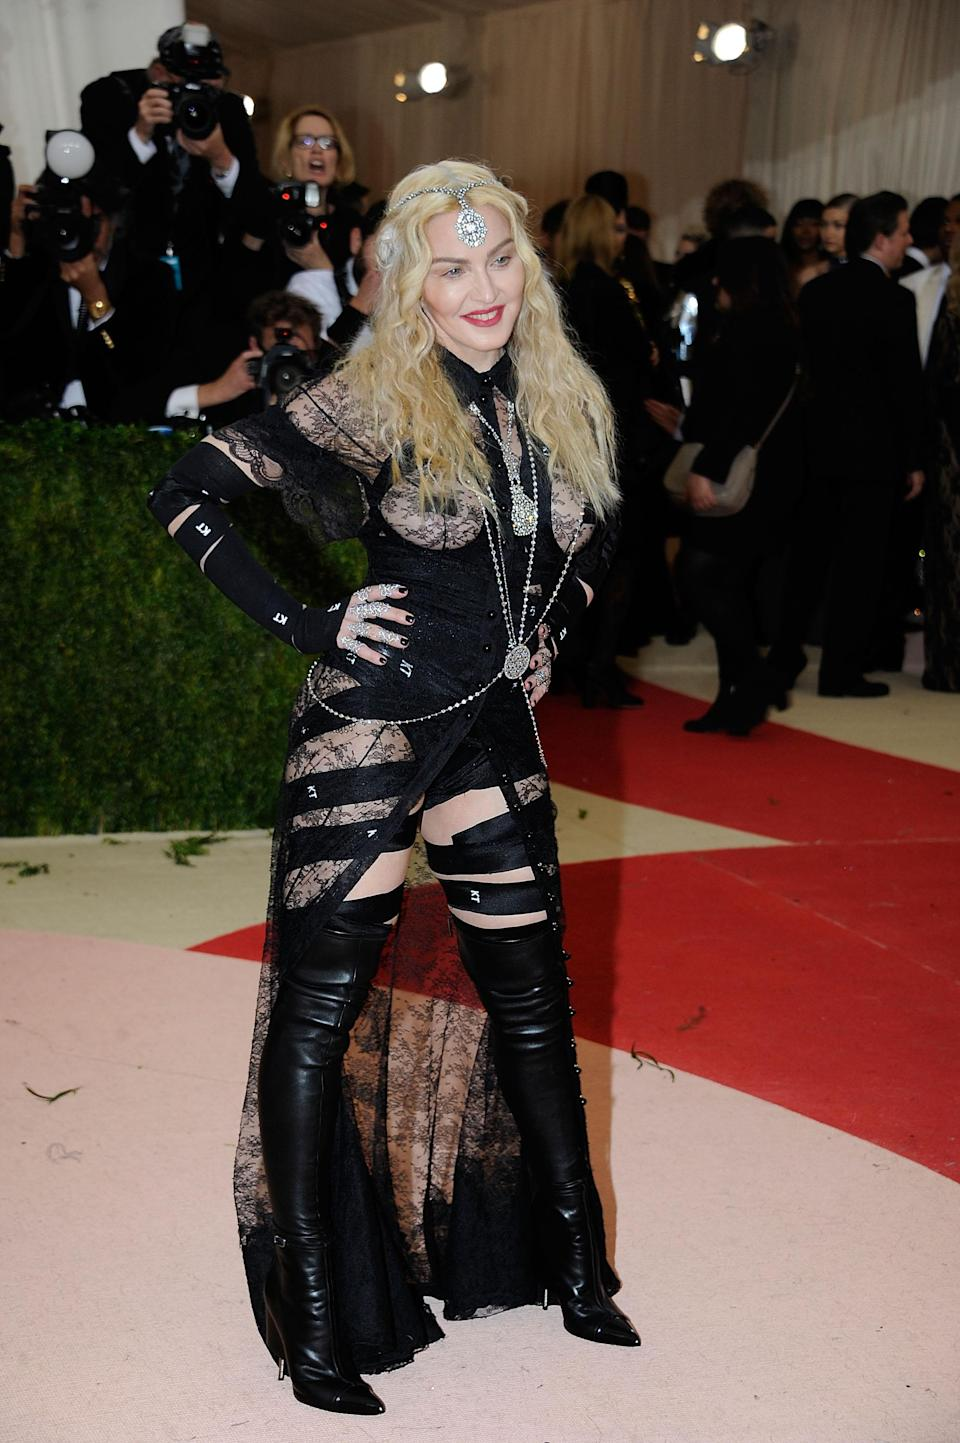 Madonna was criticized for her appearance at the 2016 Met Gala. (Photo: Getty Images)